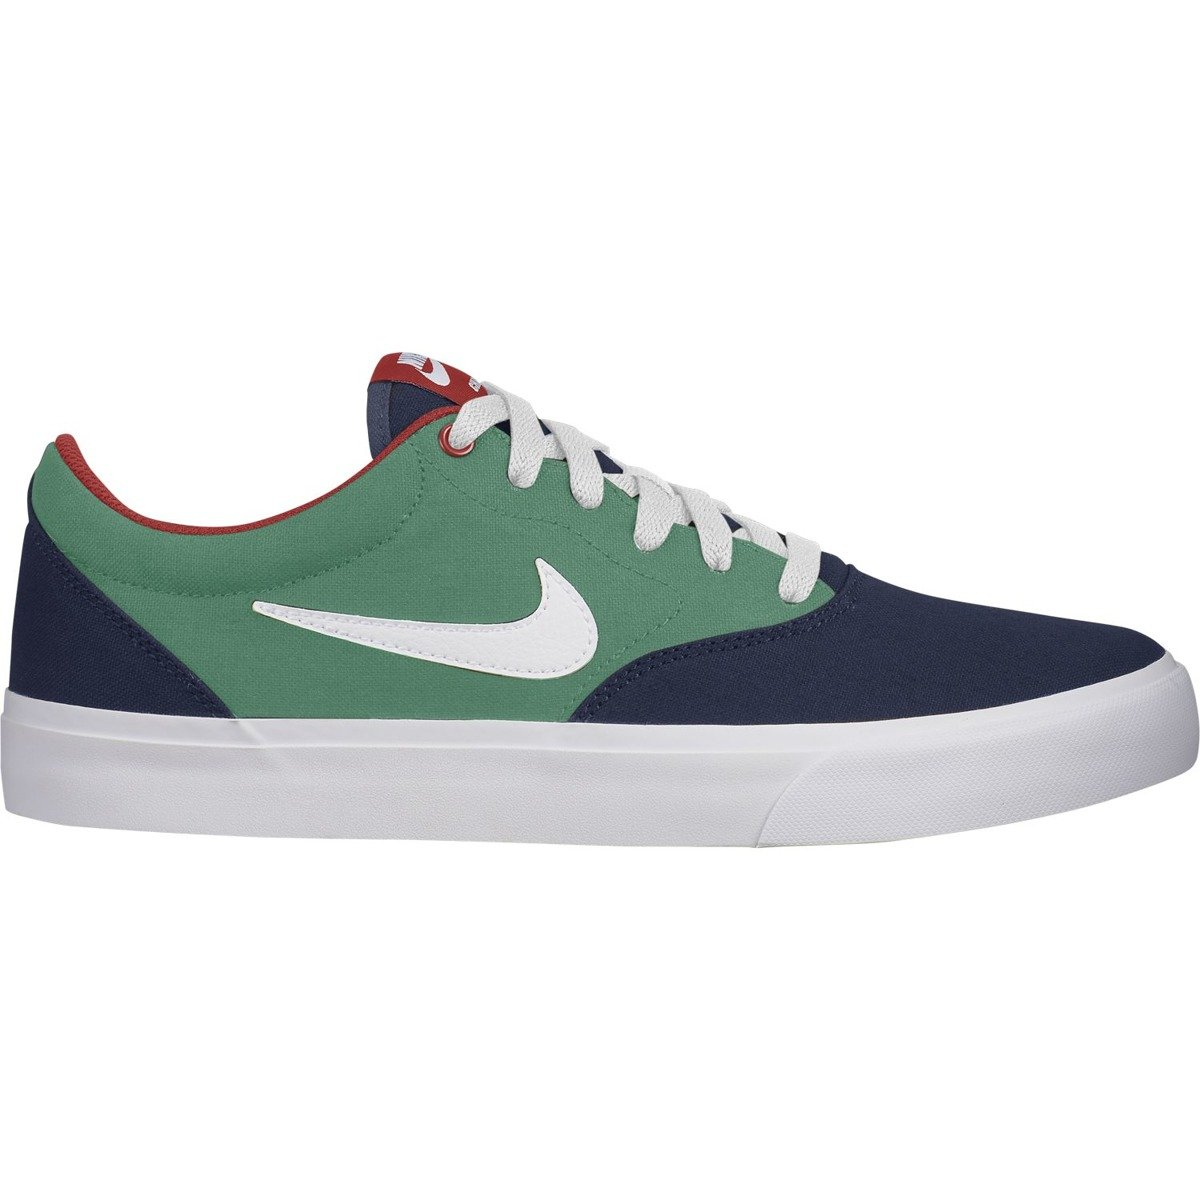 Buty Nike Sb Charge Solarsoft Textile Midnight Navywhite lucid Green